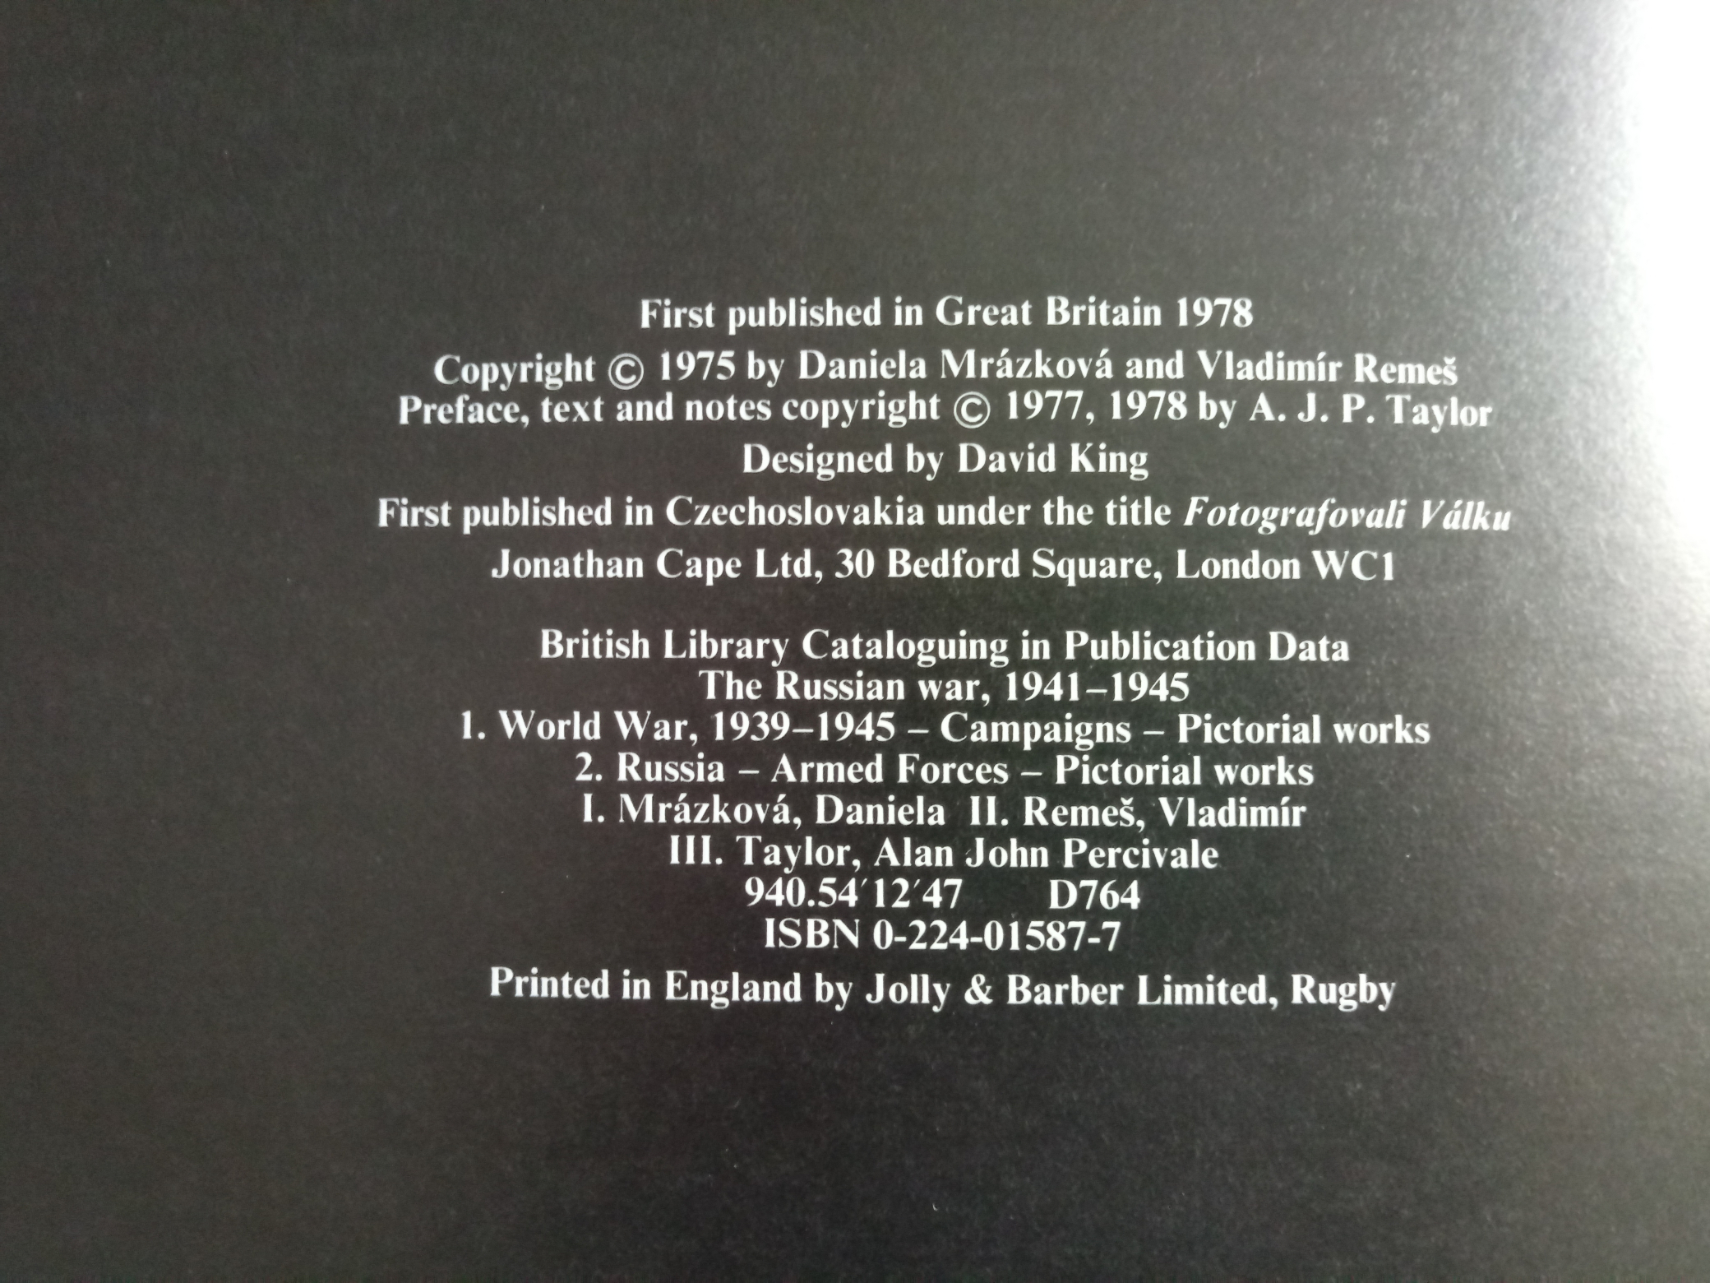 The Russian War by A. J. p. Taylor hardback book 143 pages Published 1978 Jonathan Cape ISBN 0 224 - Image 3 of 3